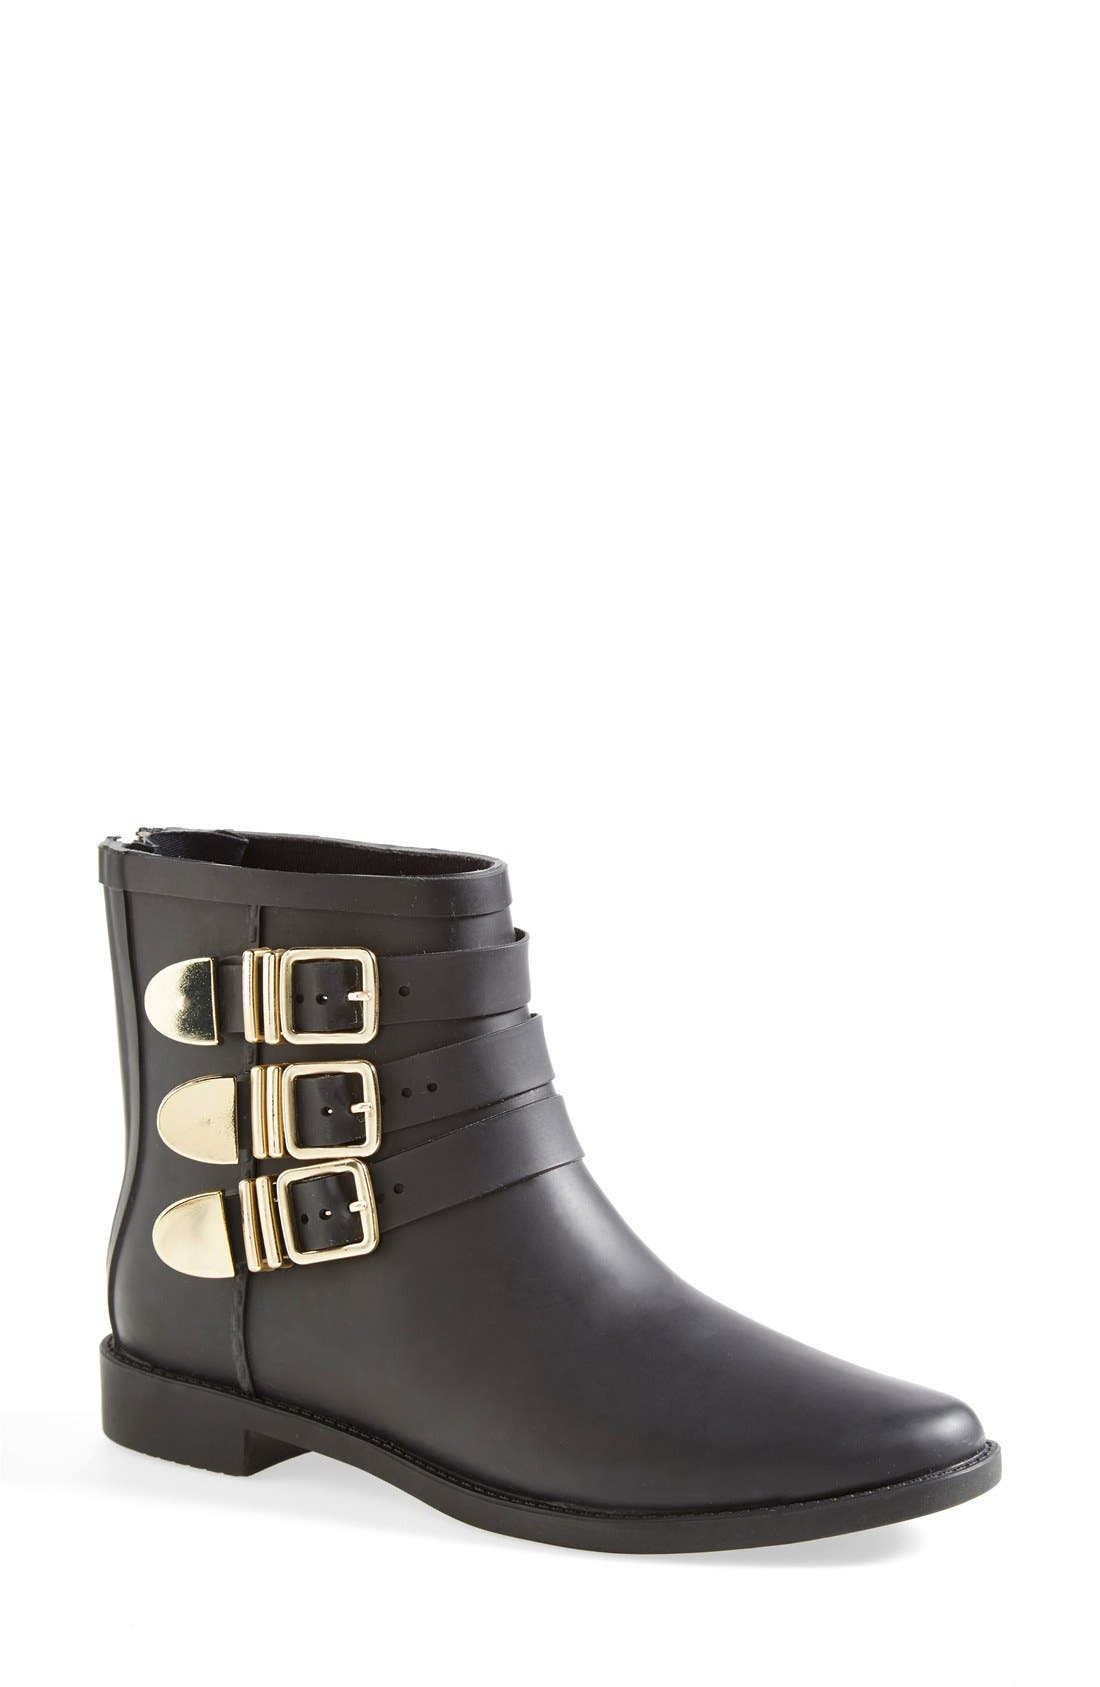 'Fenton' Rain Boot,                         Main,                         color, Black/ Gold